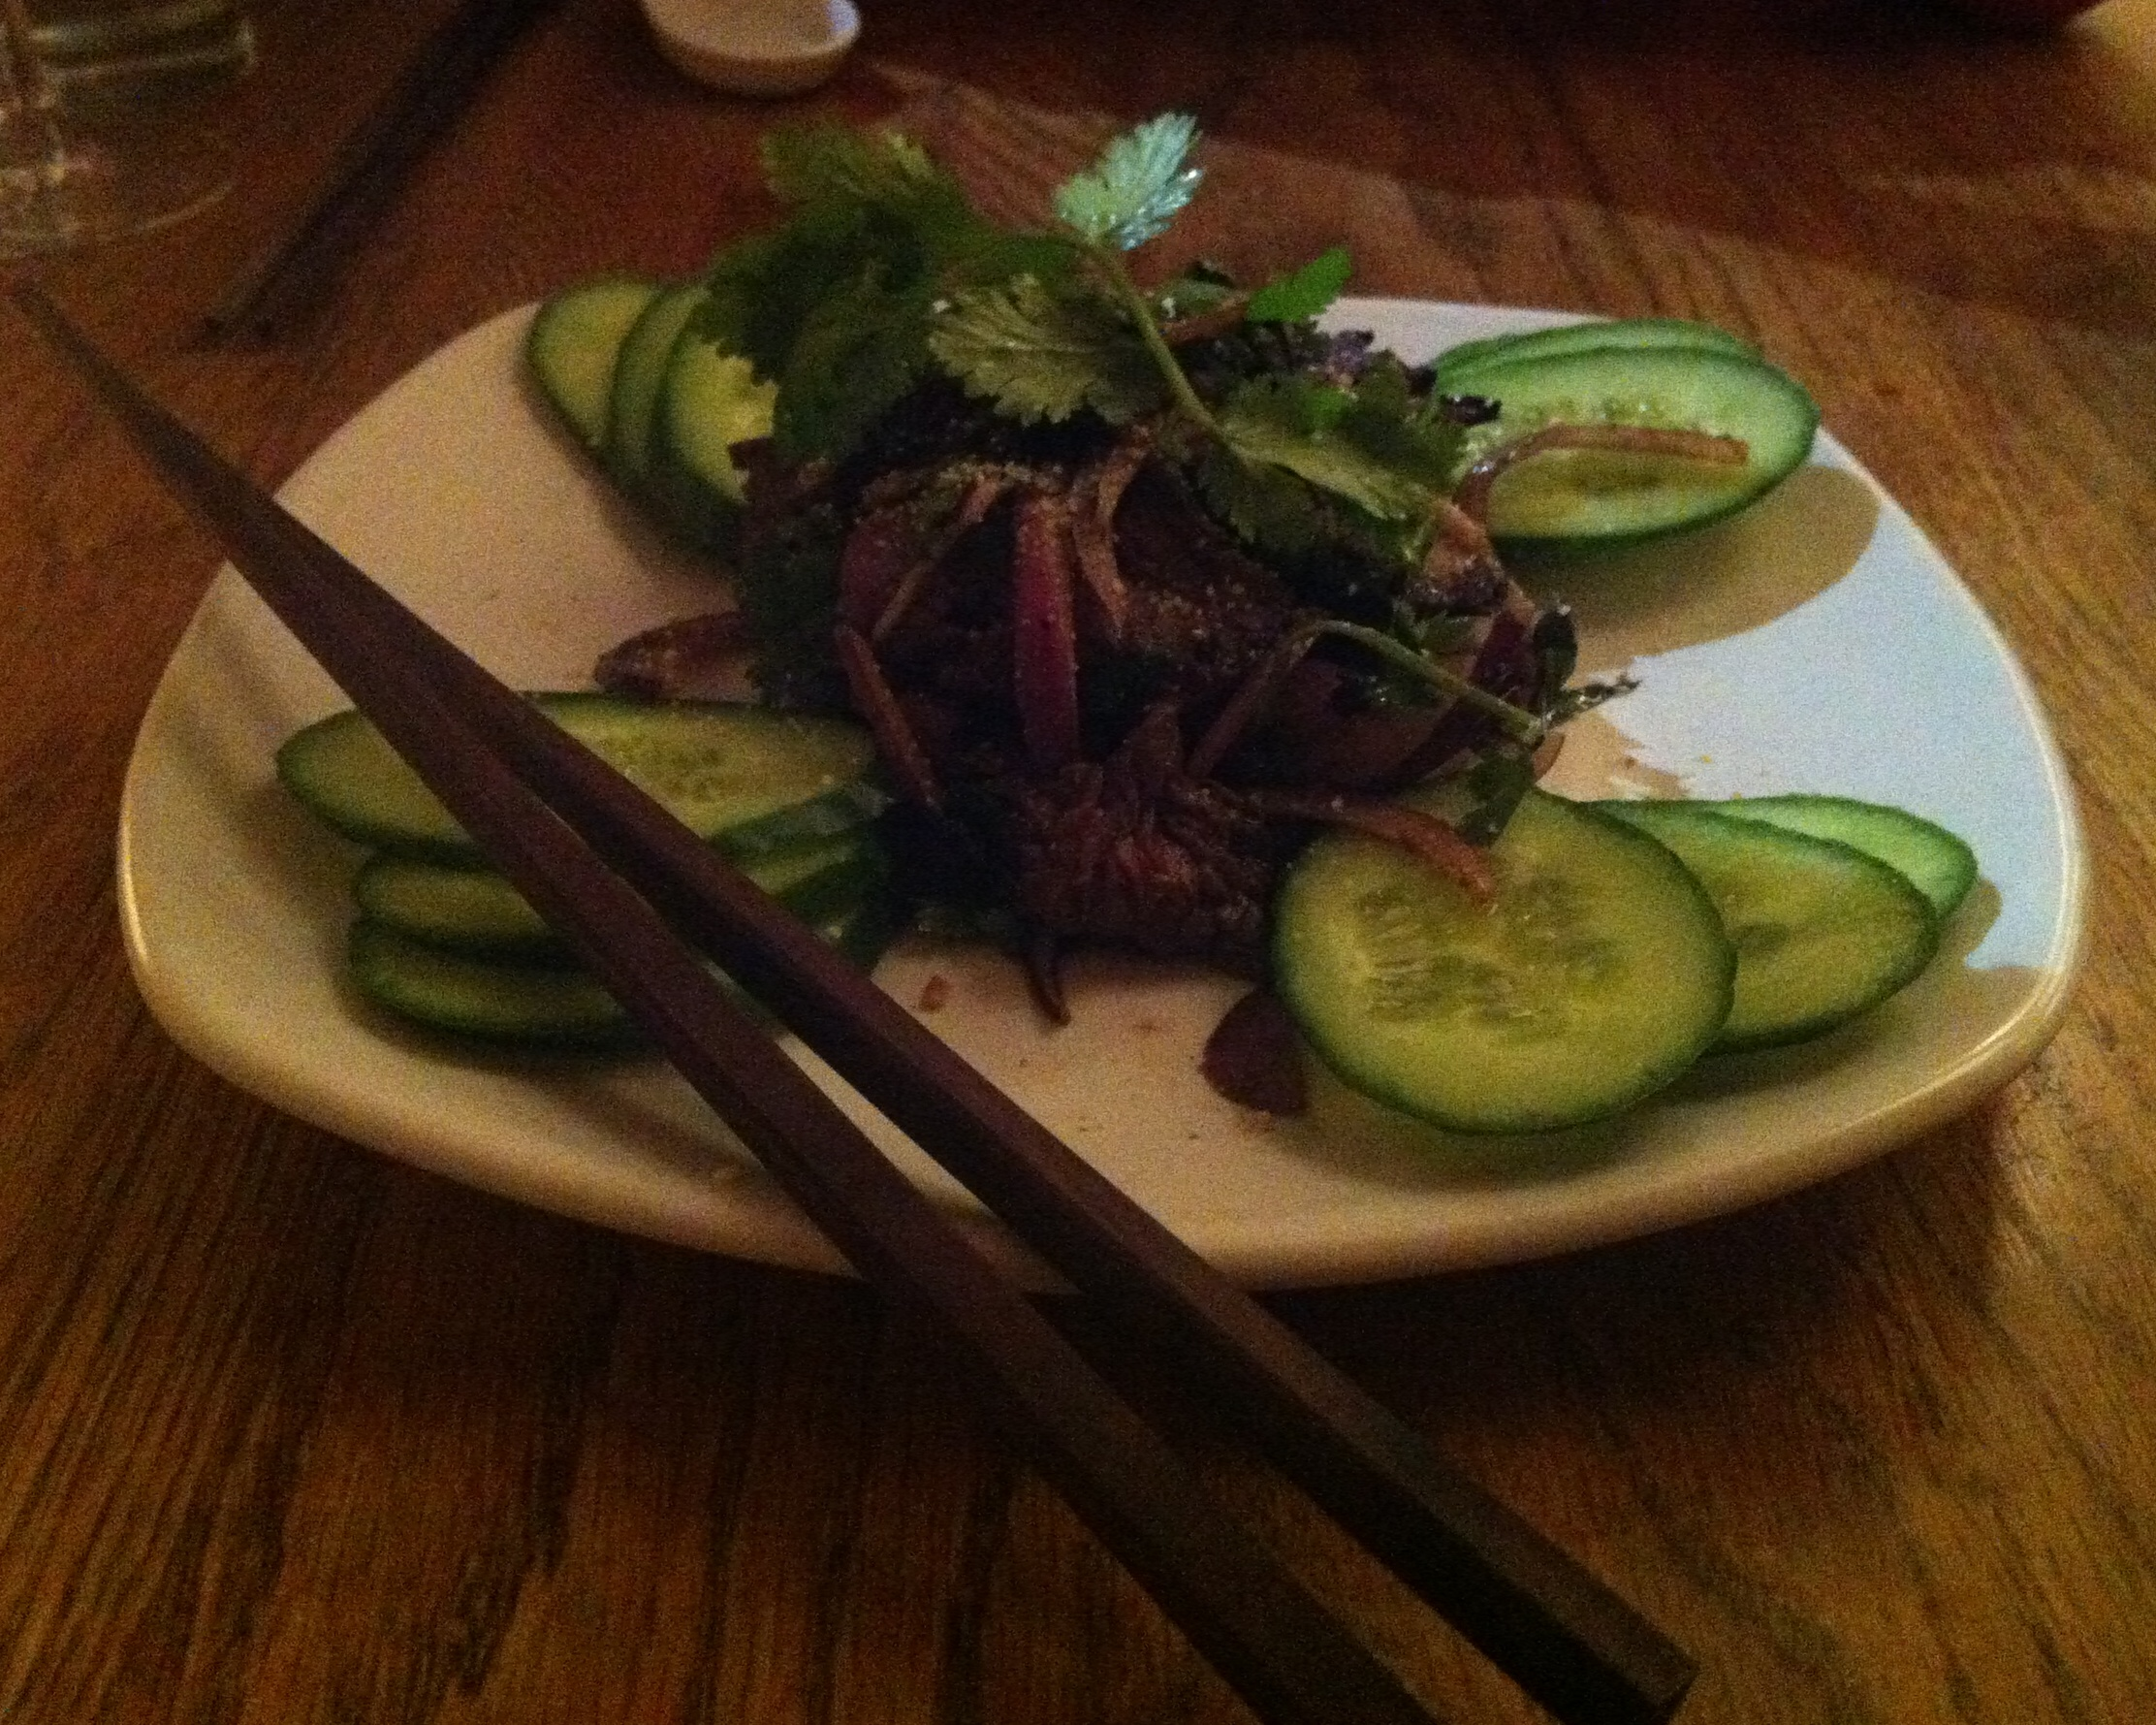 So long ago... photo is not labeled so guessing a Vietnamese beef salad...